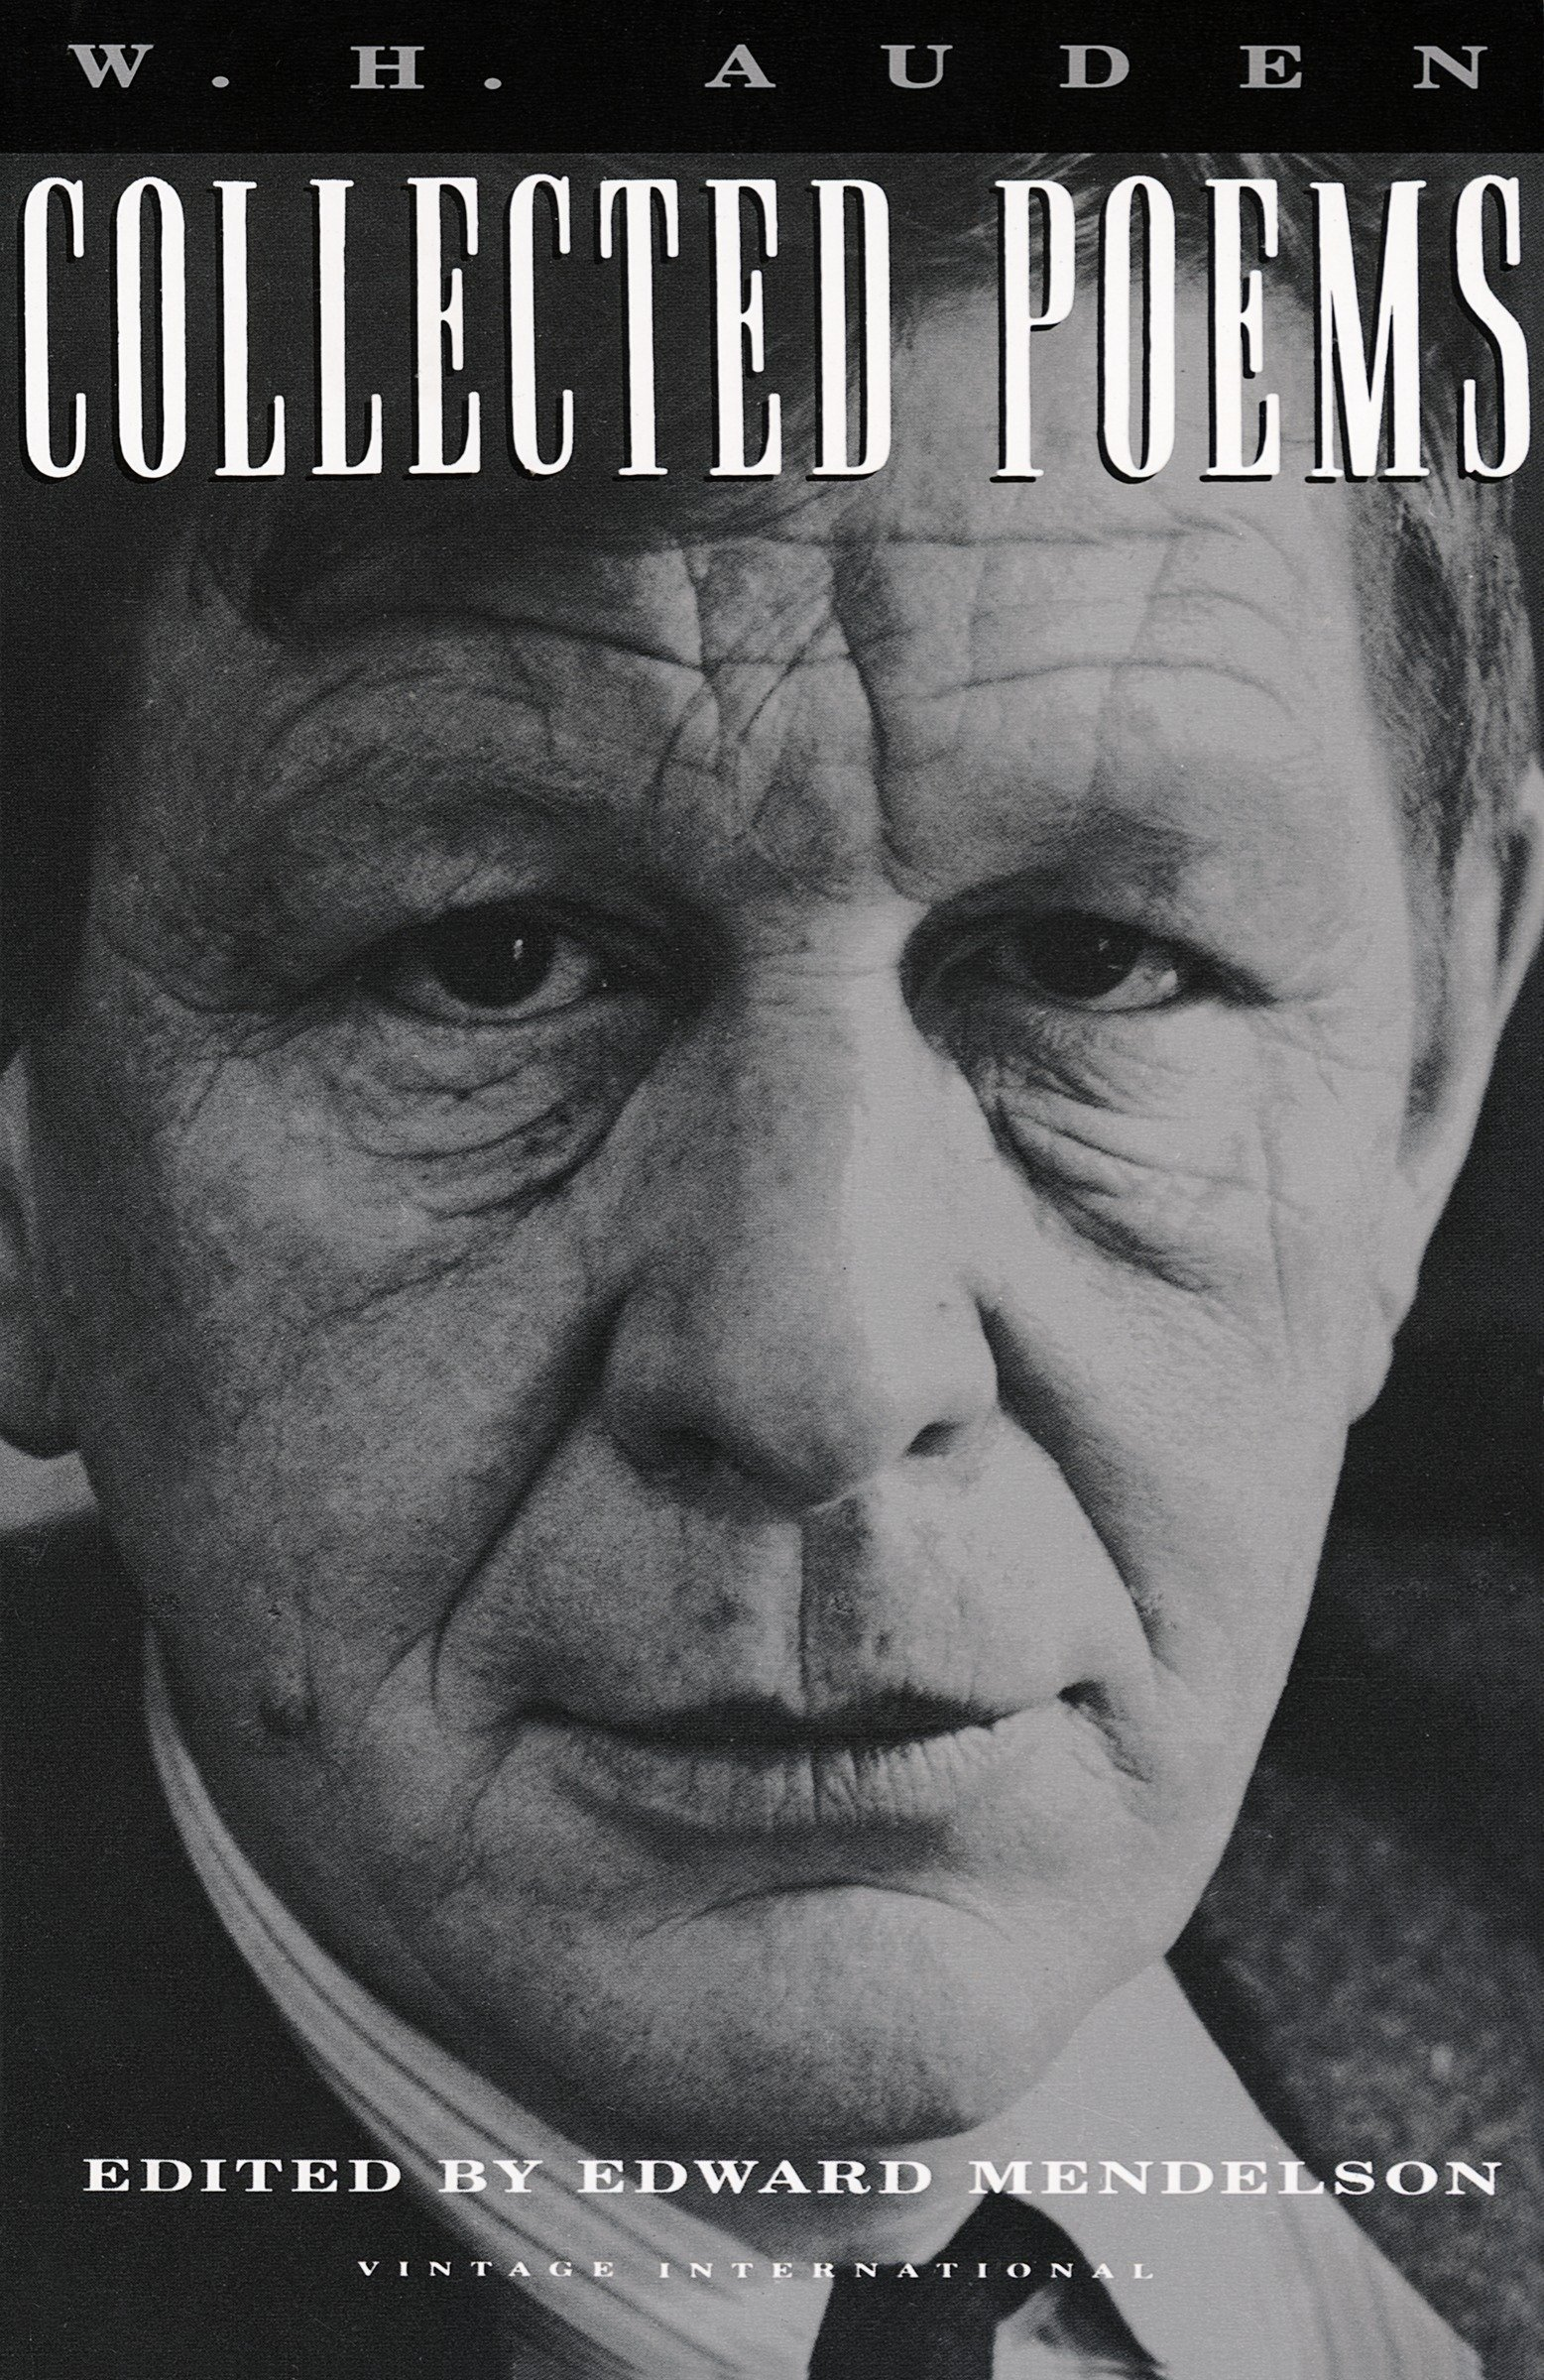 Image result for collected poems auden vintage